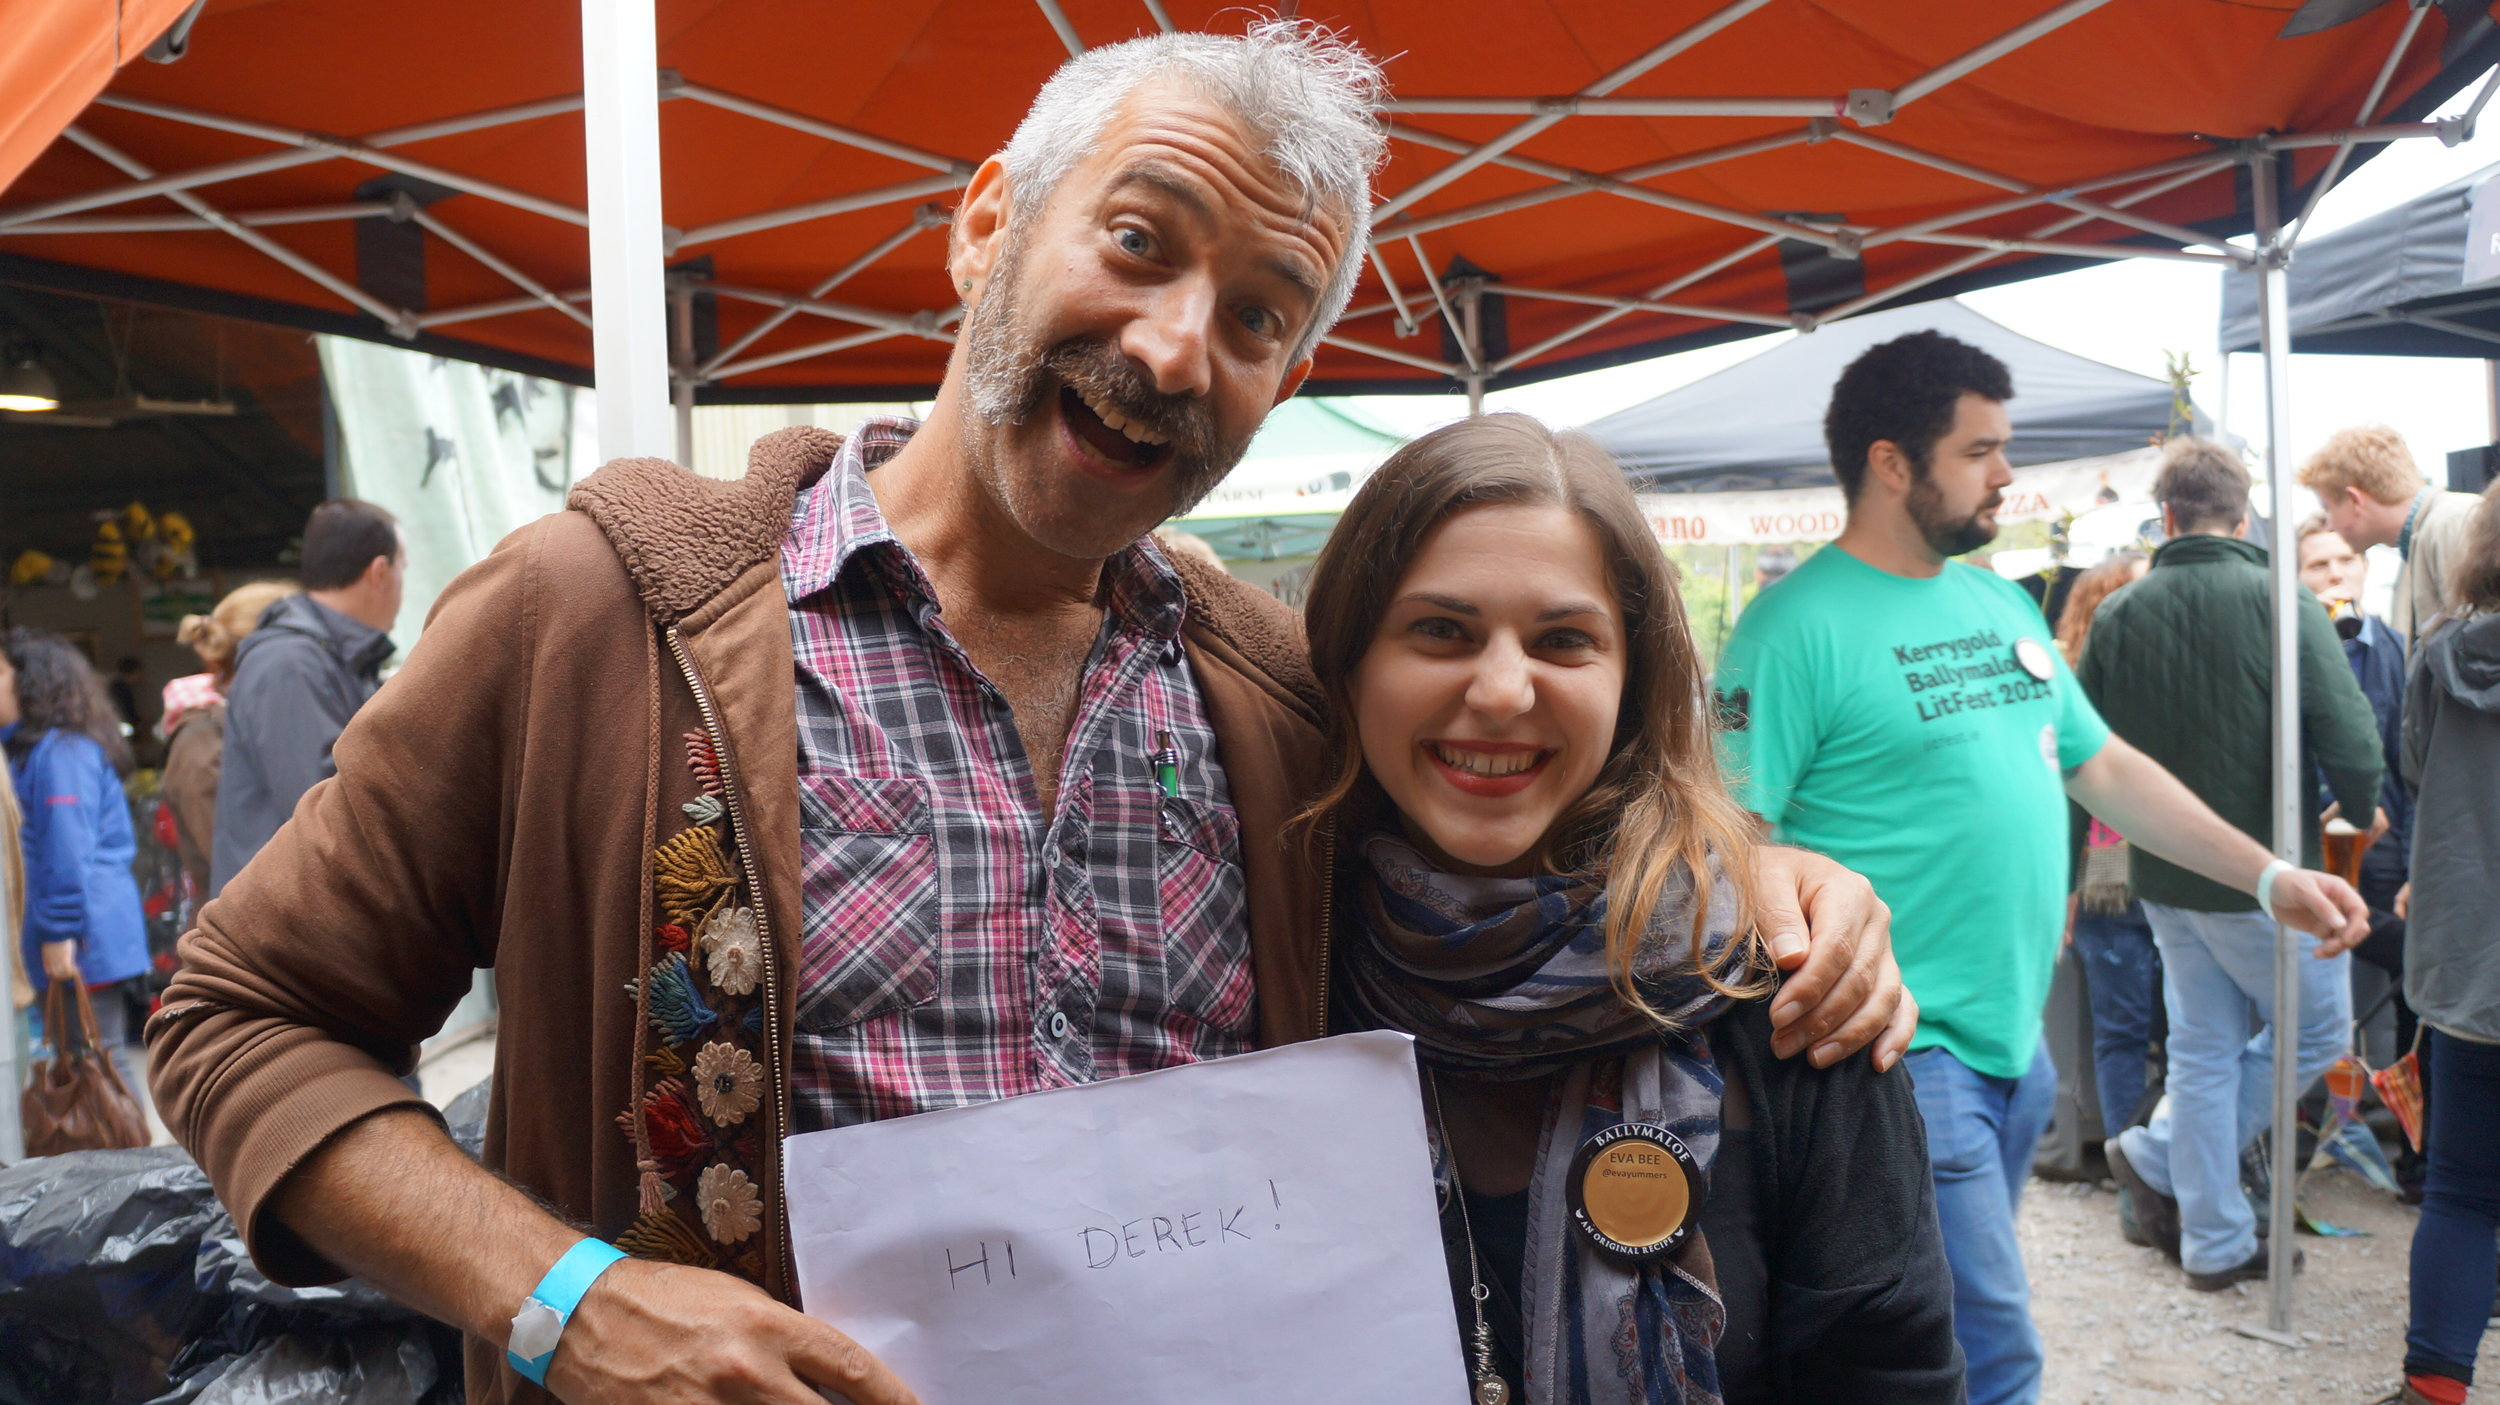 Sandor and I at Ballymaloe LitFest in 2014. Read more about my LitFest writing experience  here .